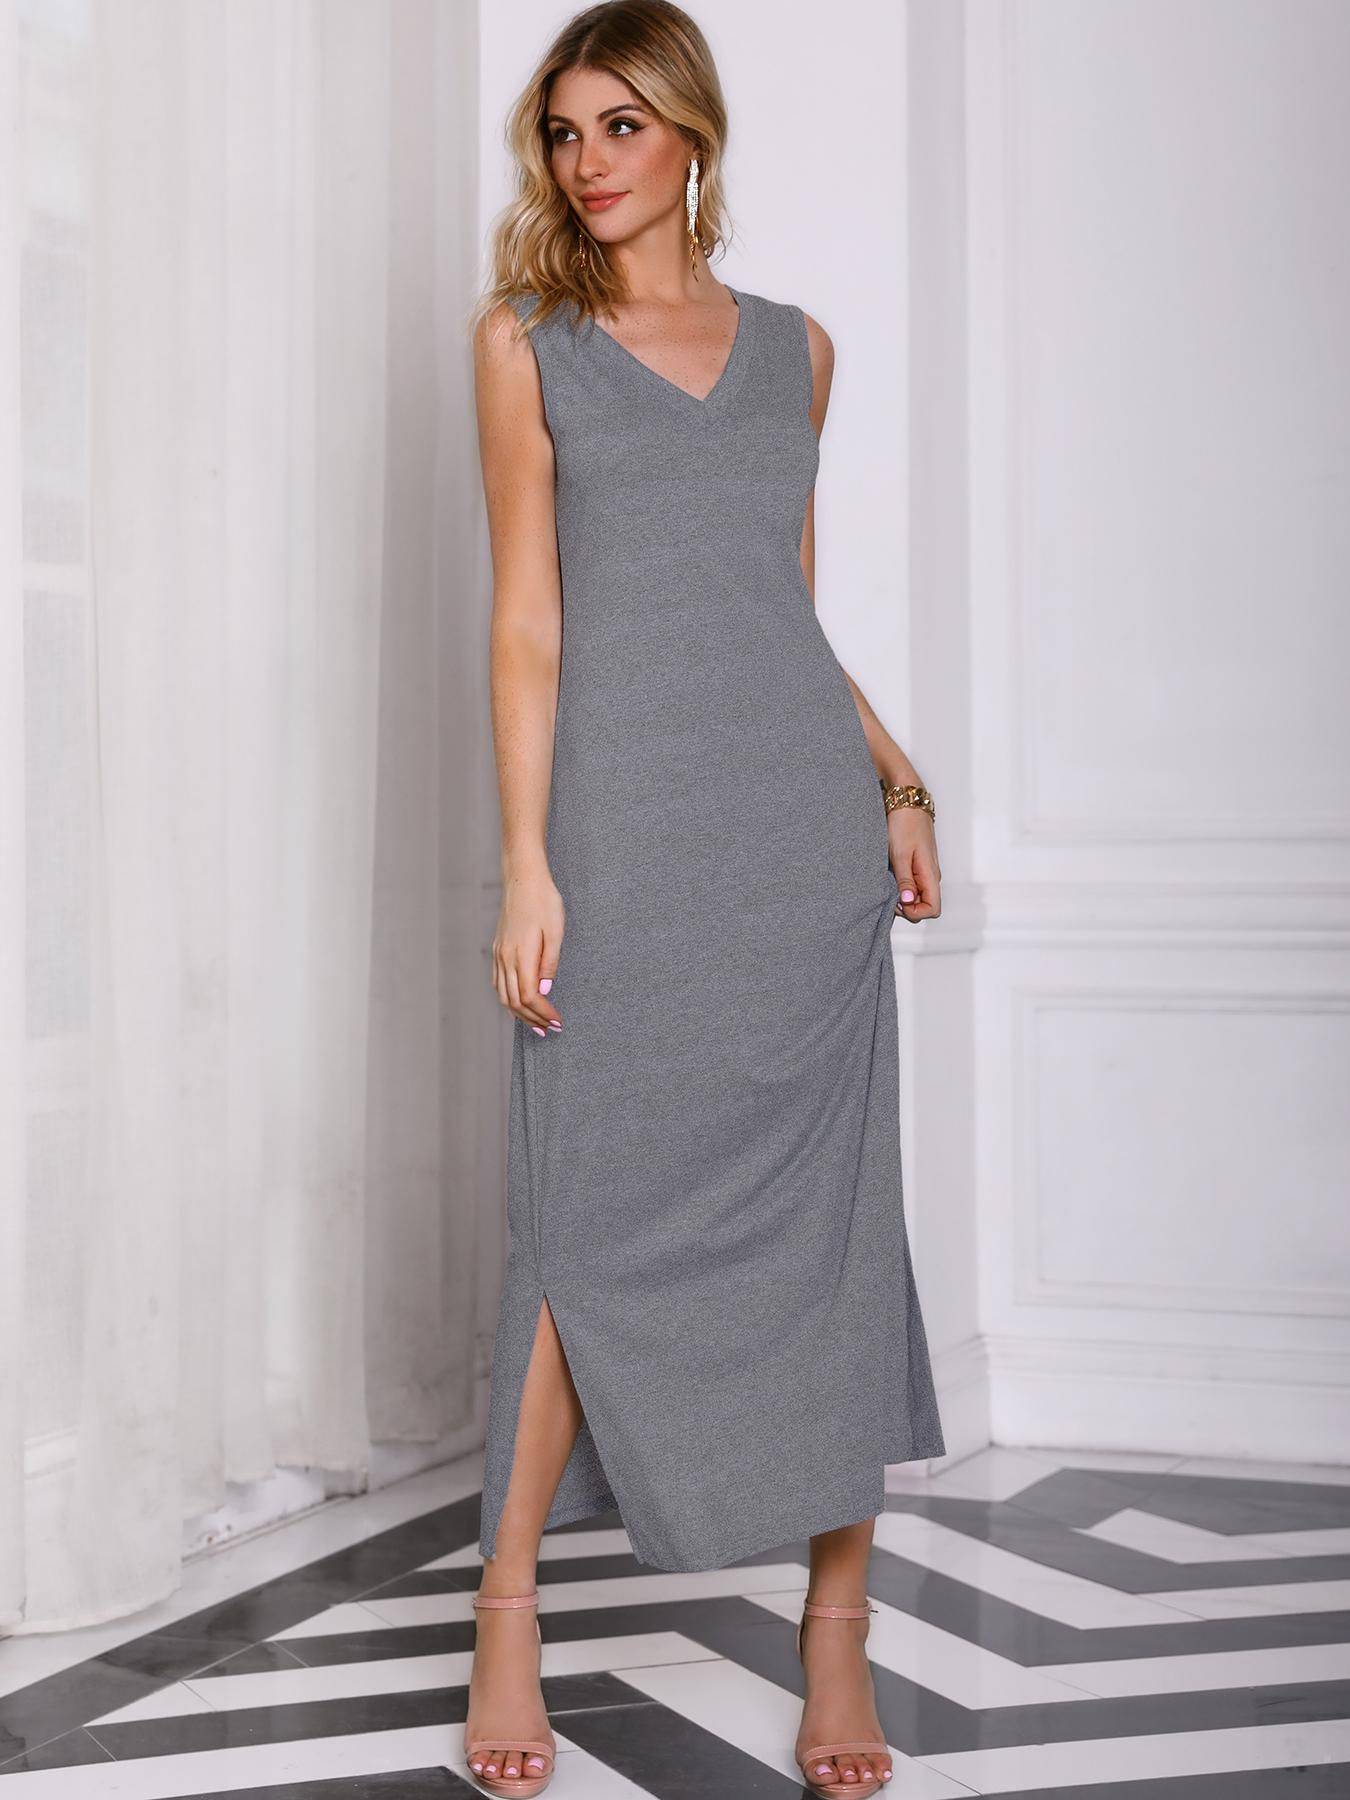 Solid Sleeveless Slit Tank Causal Dress фото